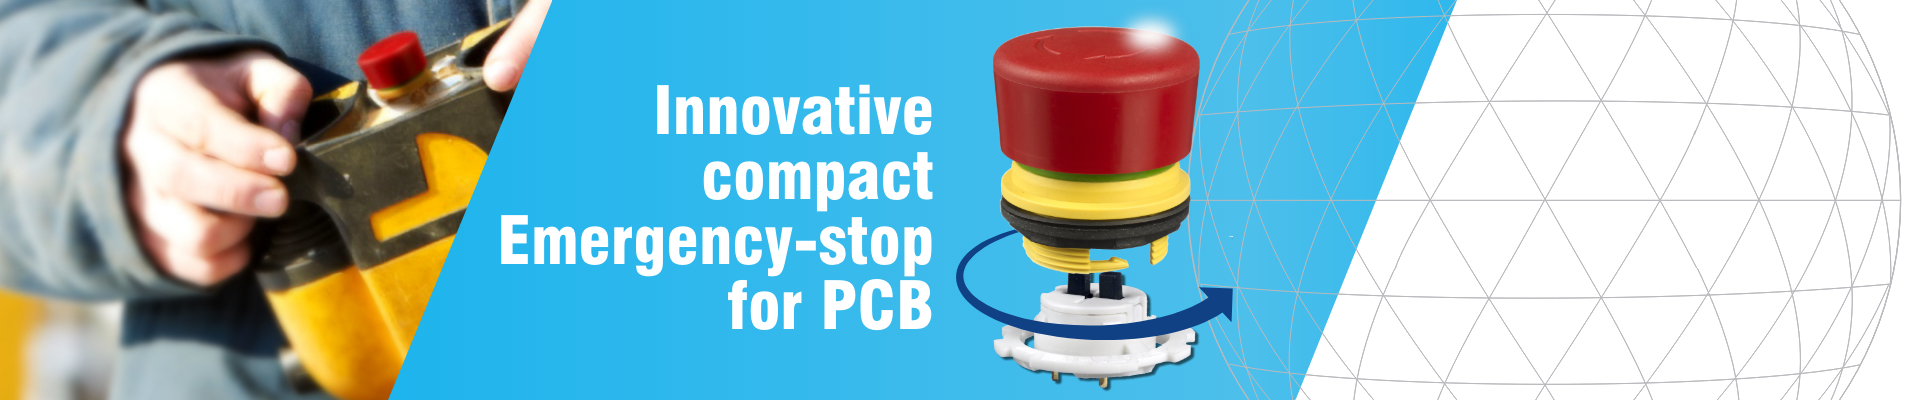 Innovative compact emergency-stop for PCB